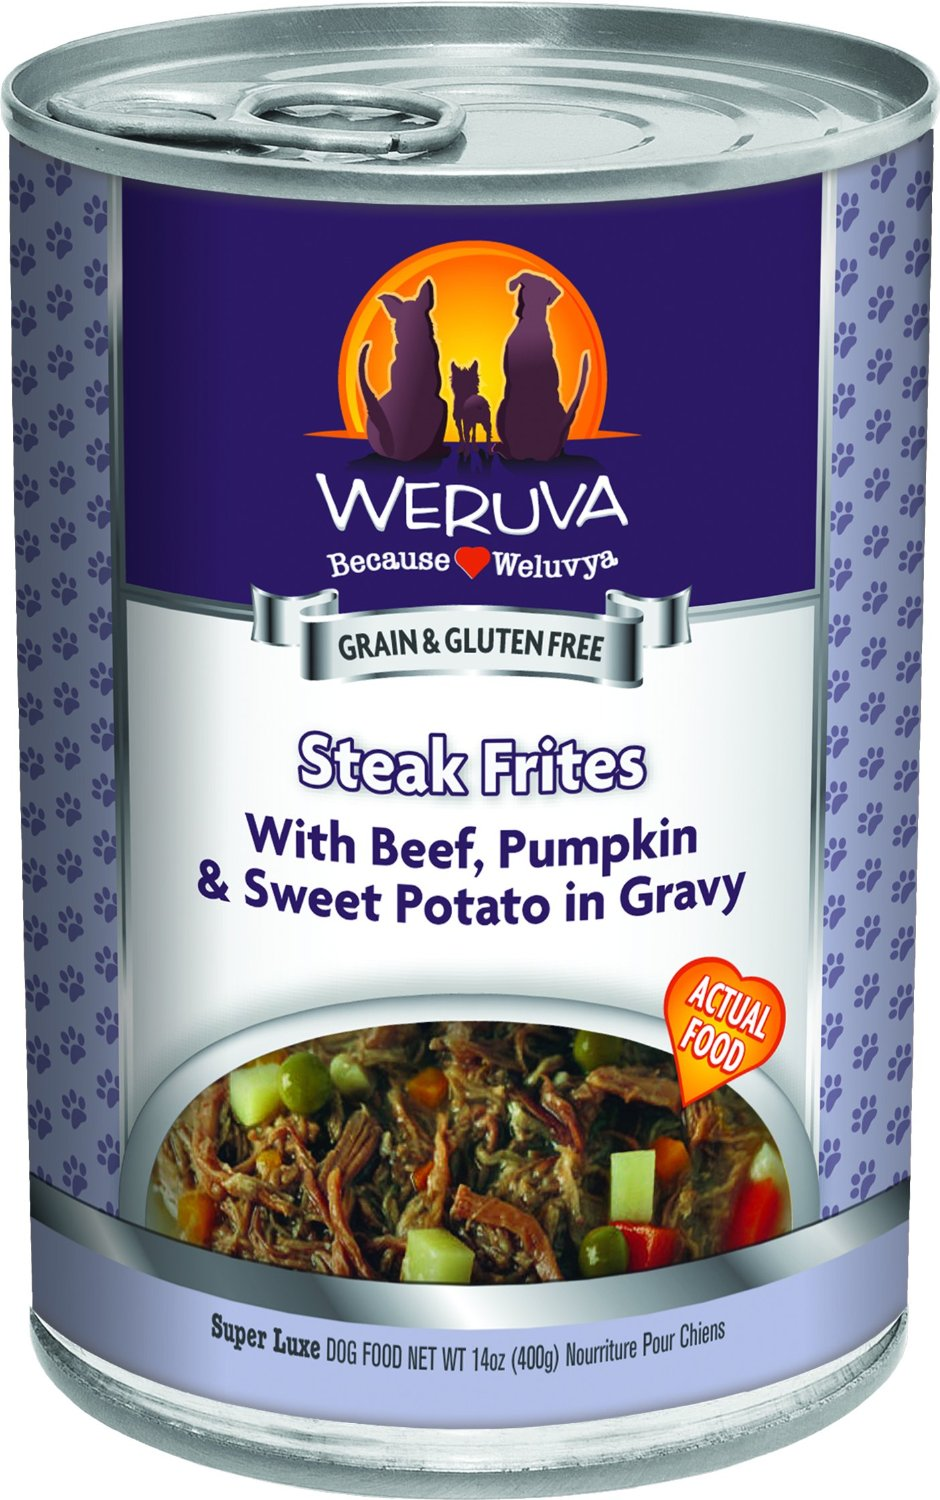 Weruva Steak Frites Dog Food